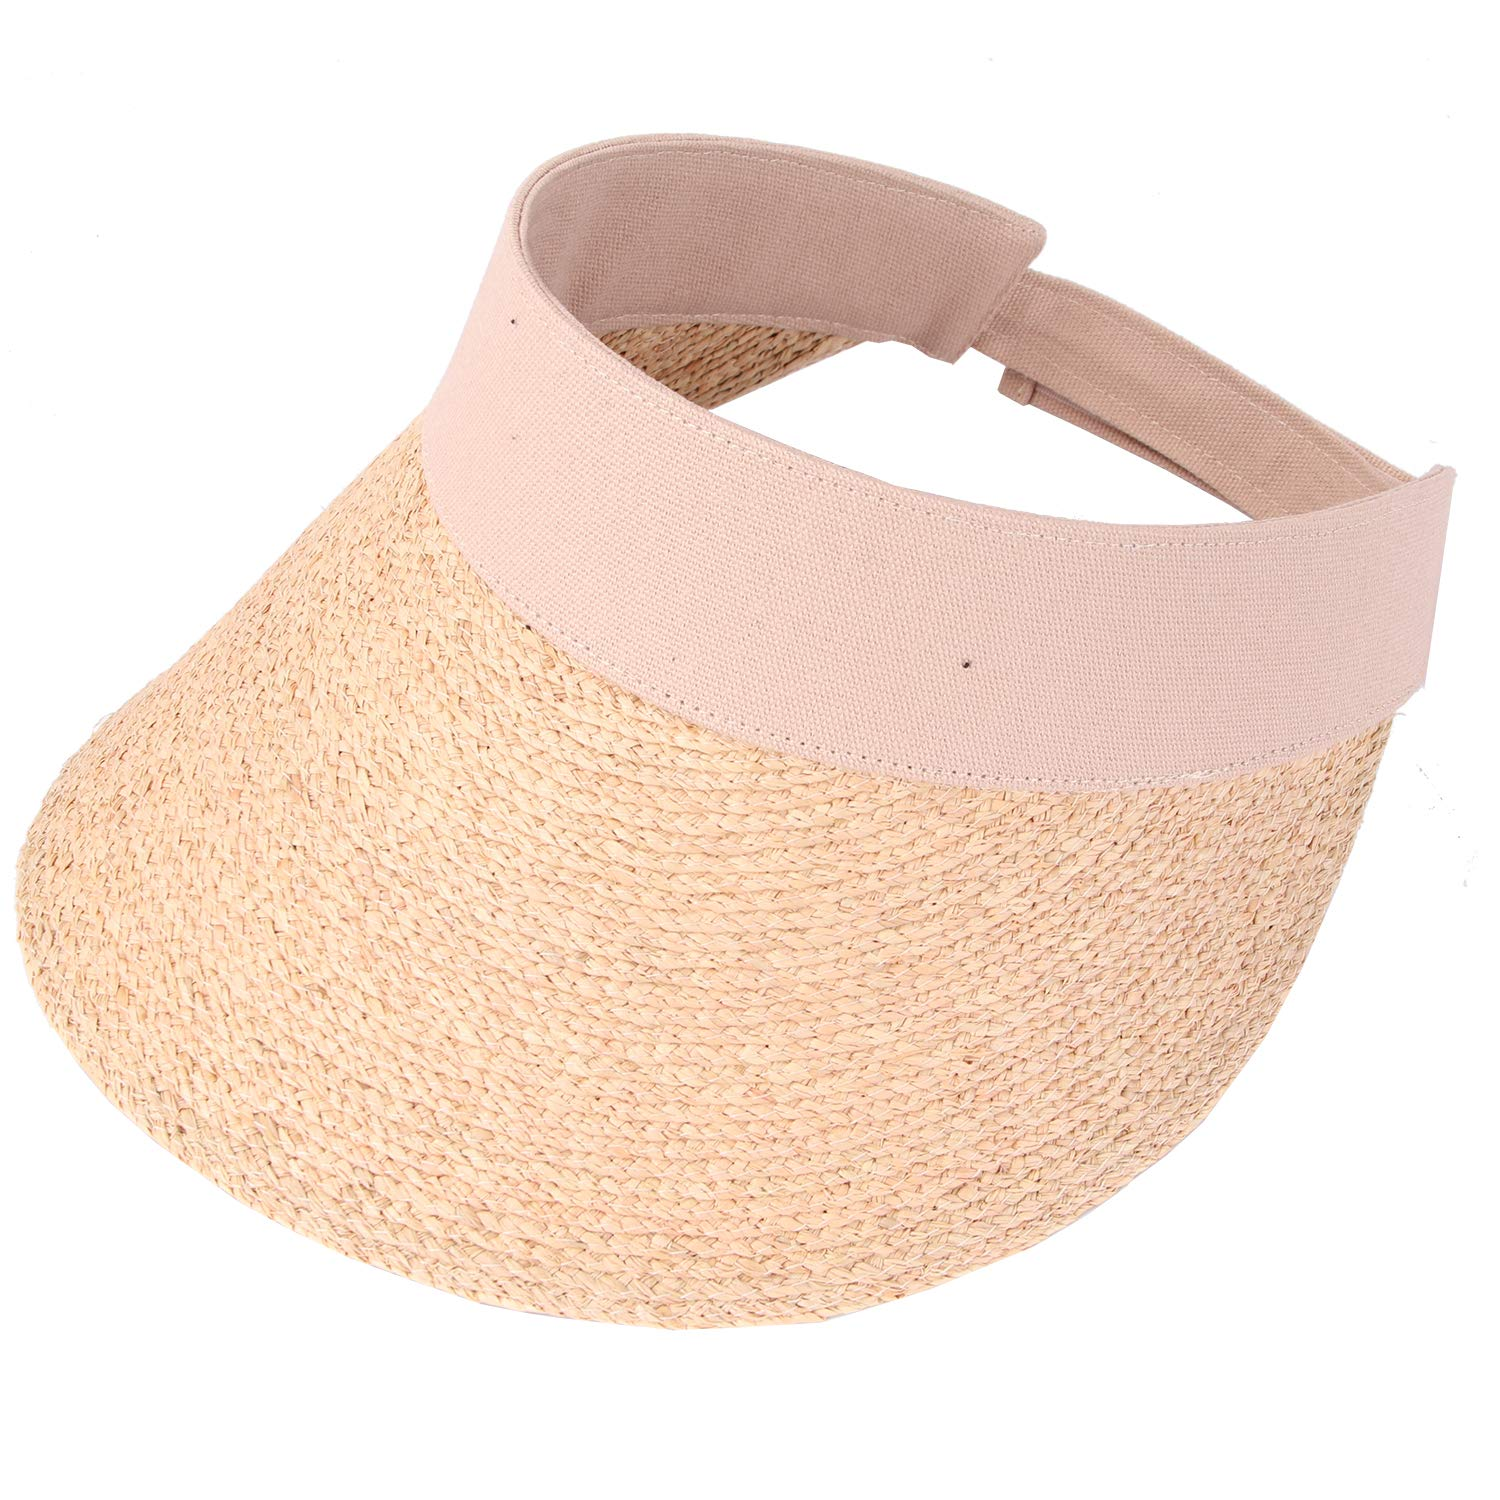 RIONA Women's Summer Straw Sun Visor Beach Straw Sun Hats Wide Brim UPF 50+ Beige